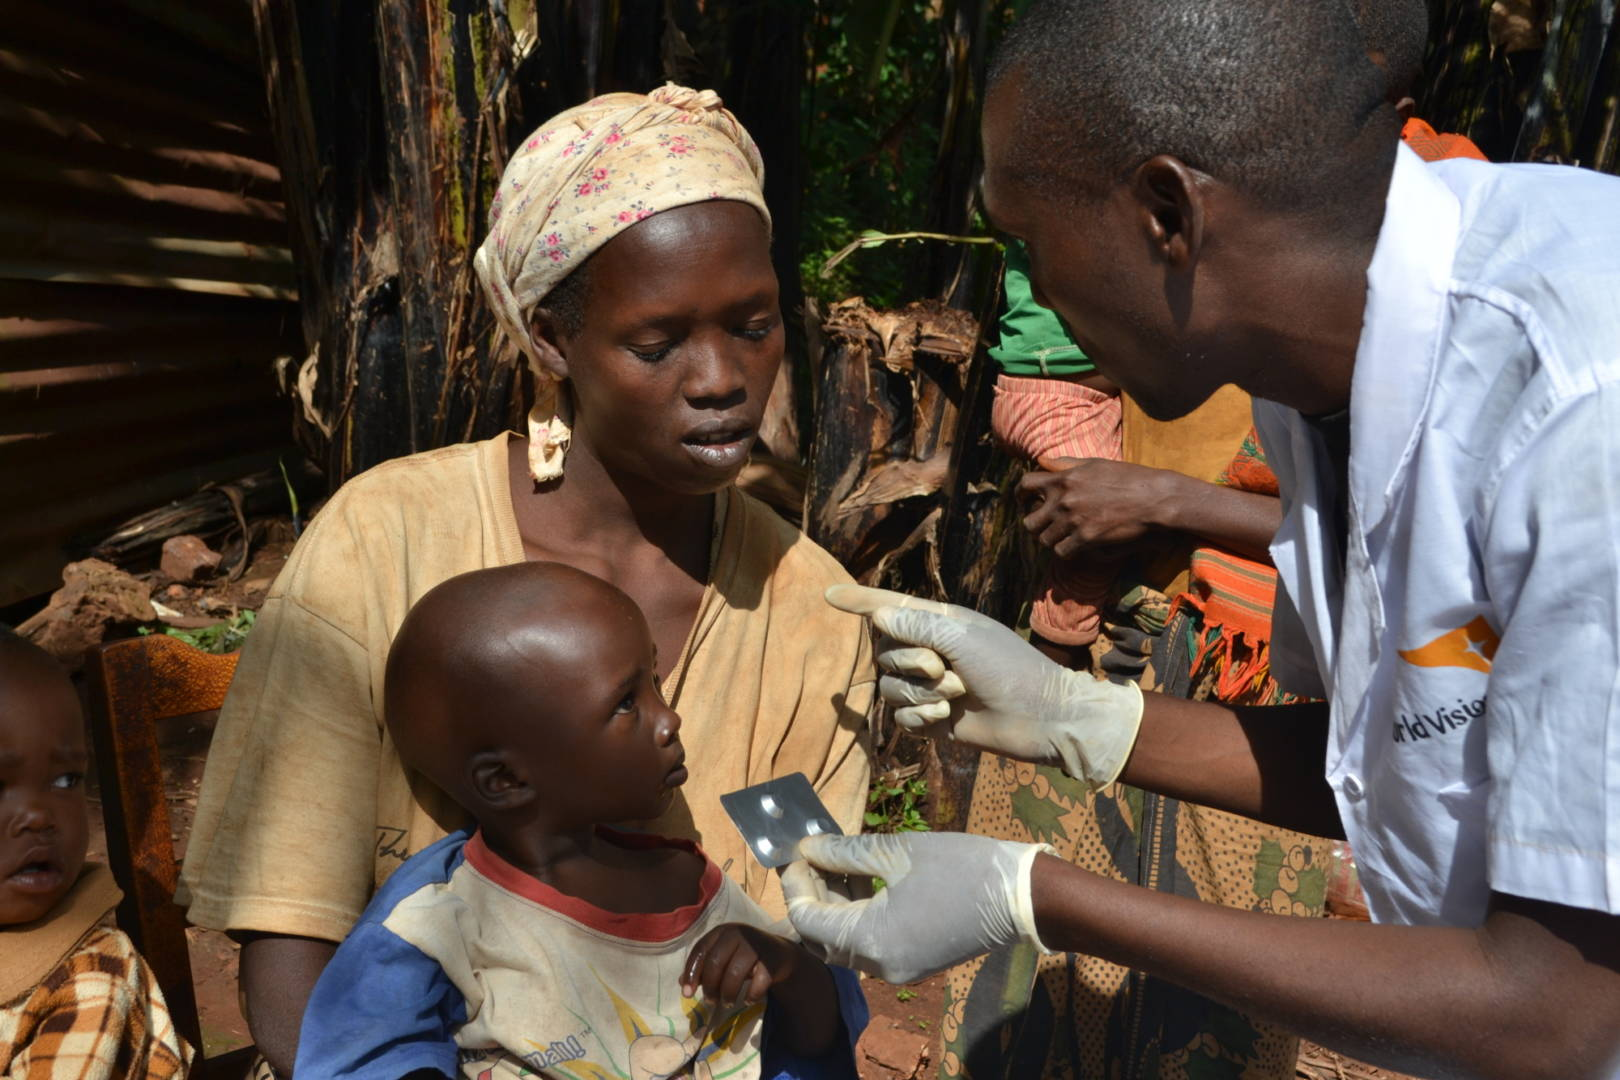 At his home in northeast Burundi, community health worker Diomede, right, diagnoses and treats common ailments of children under age 5. Malaria is among the three most deadly diseases for children this young. (©2016 World Vision, Javan Niyakire)